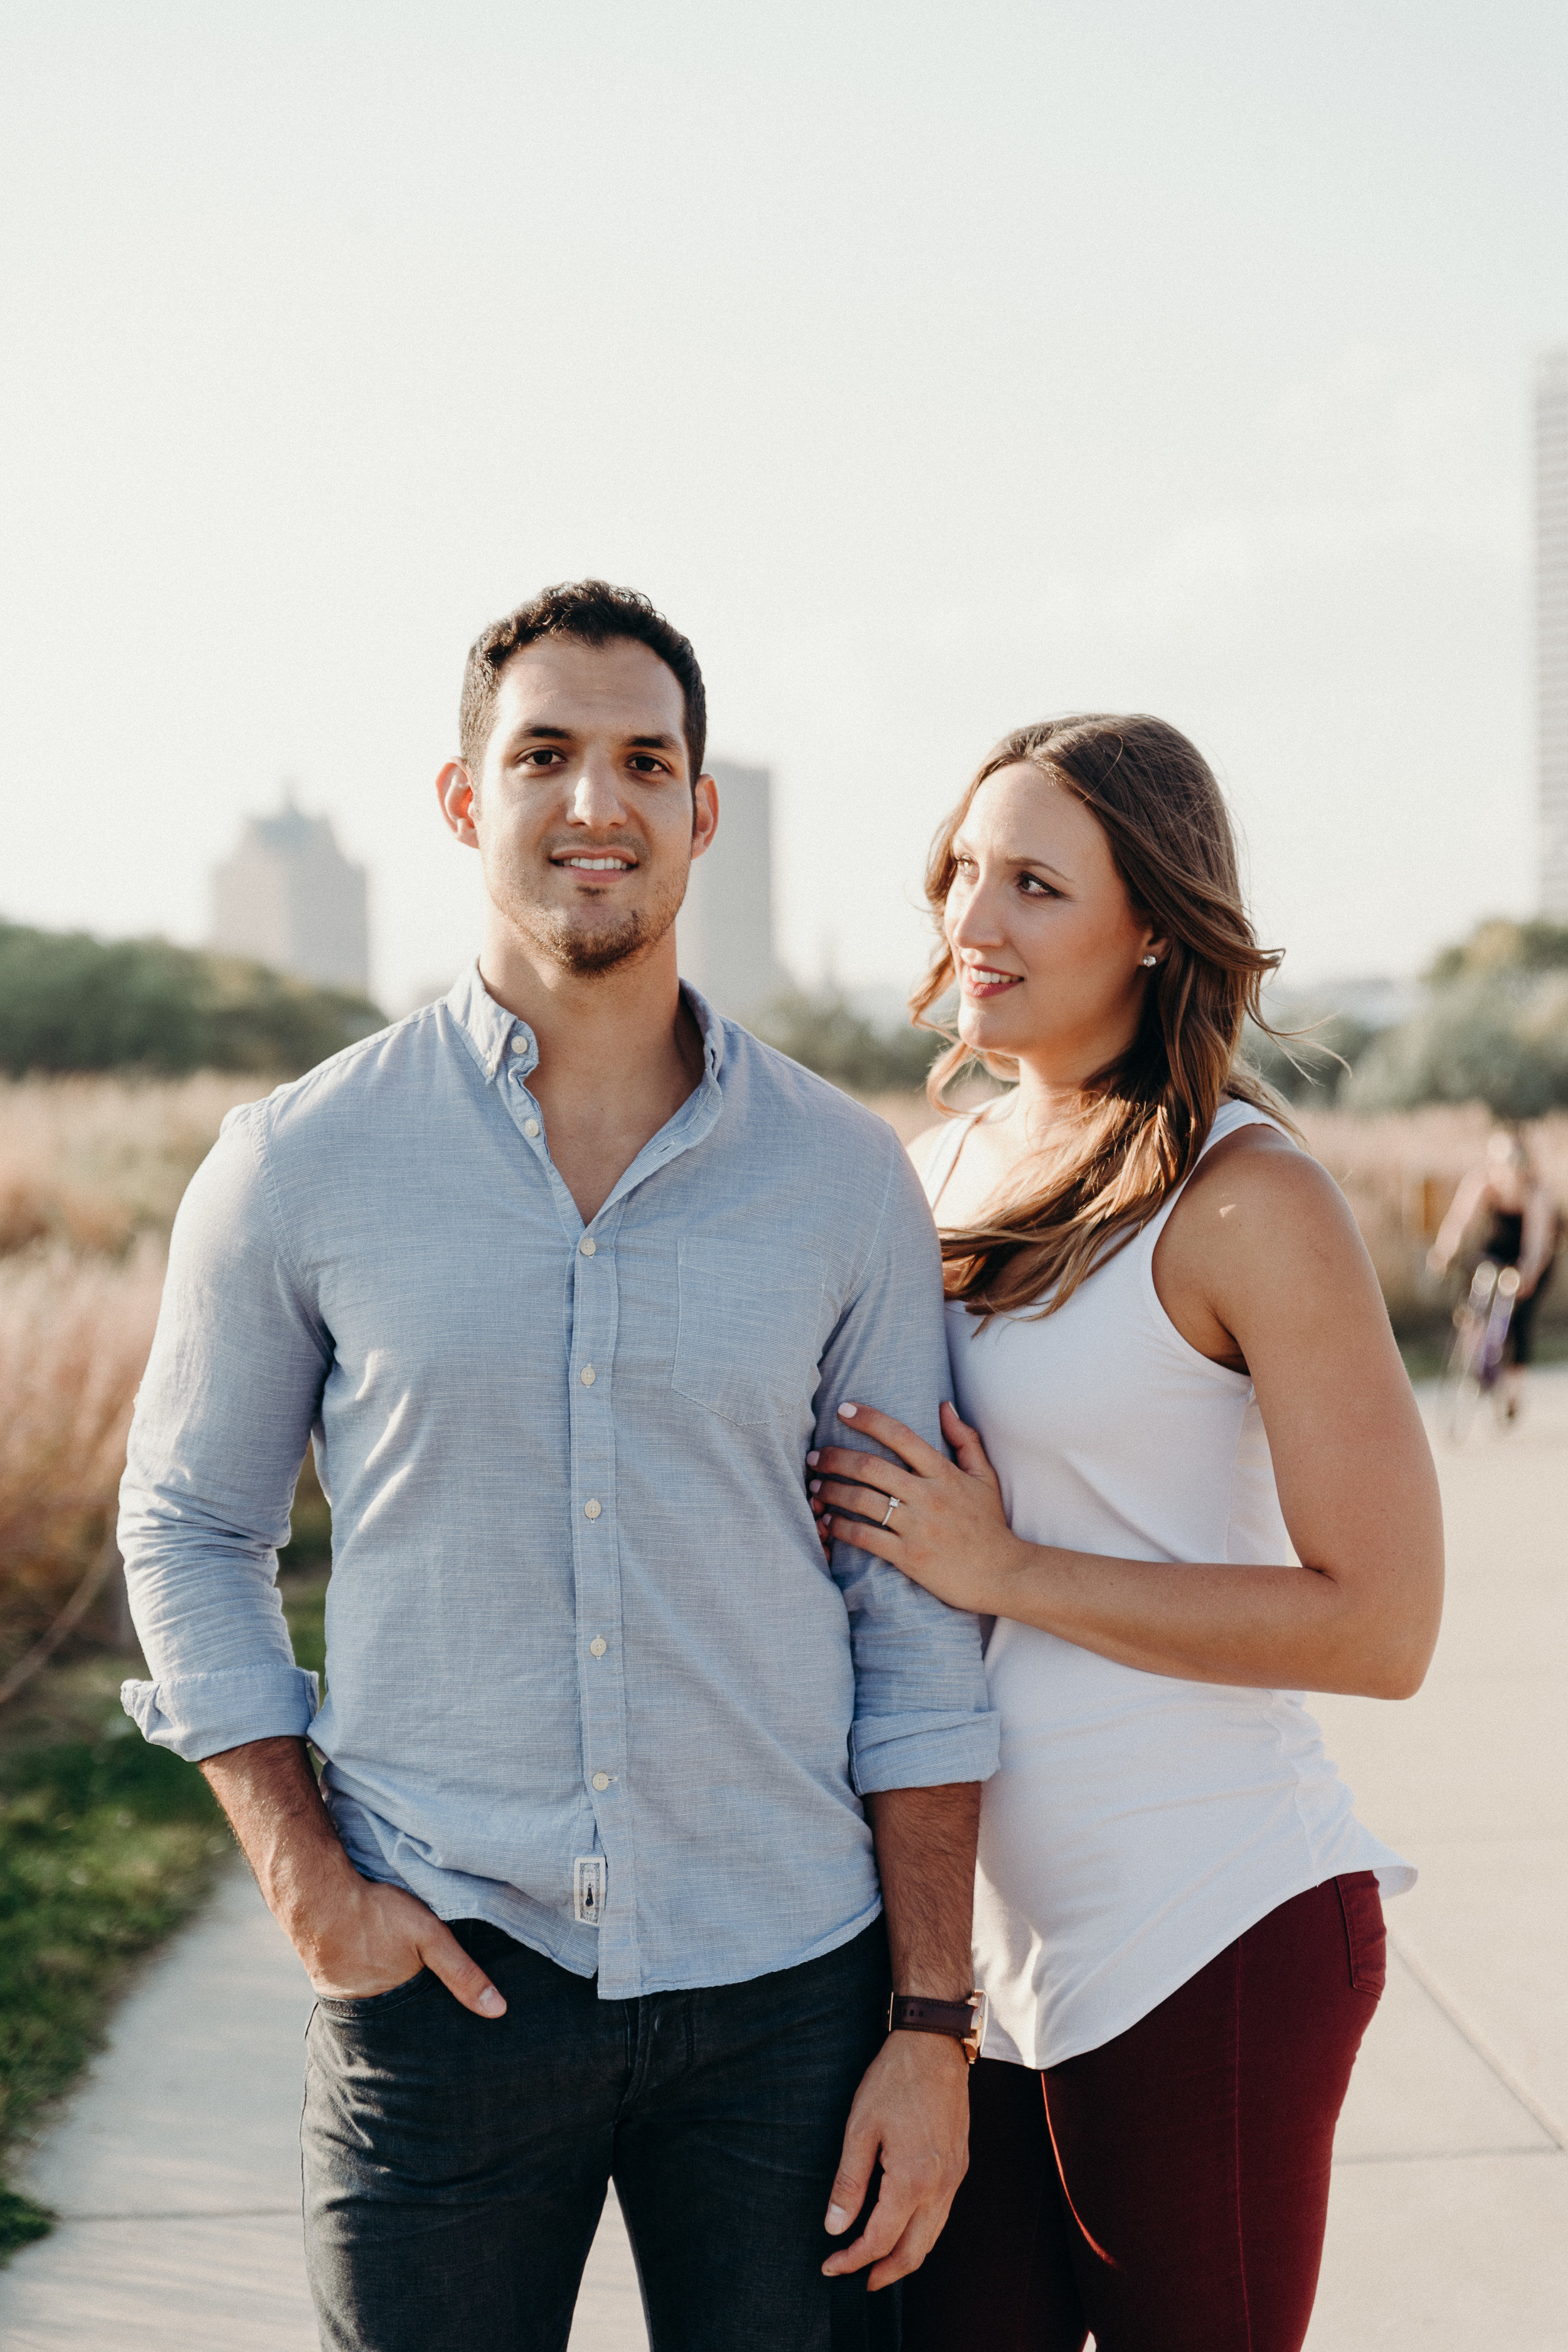 Woman looks at her fiancé while holding his arm.